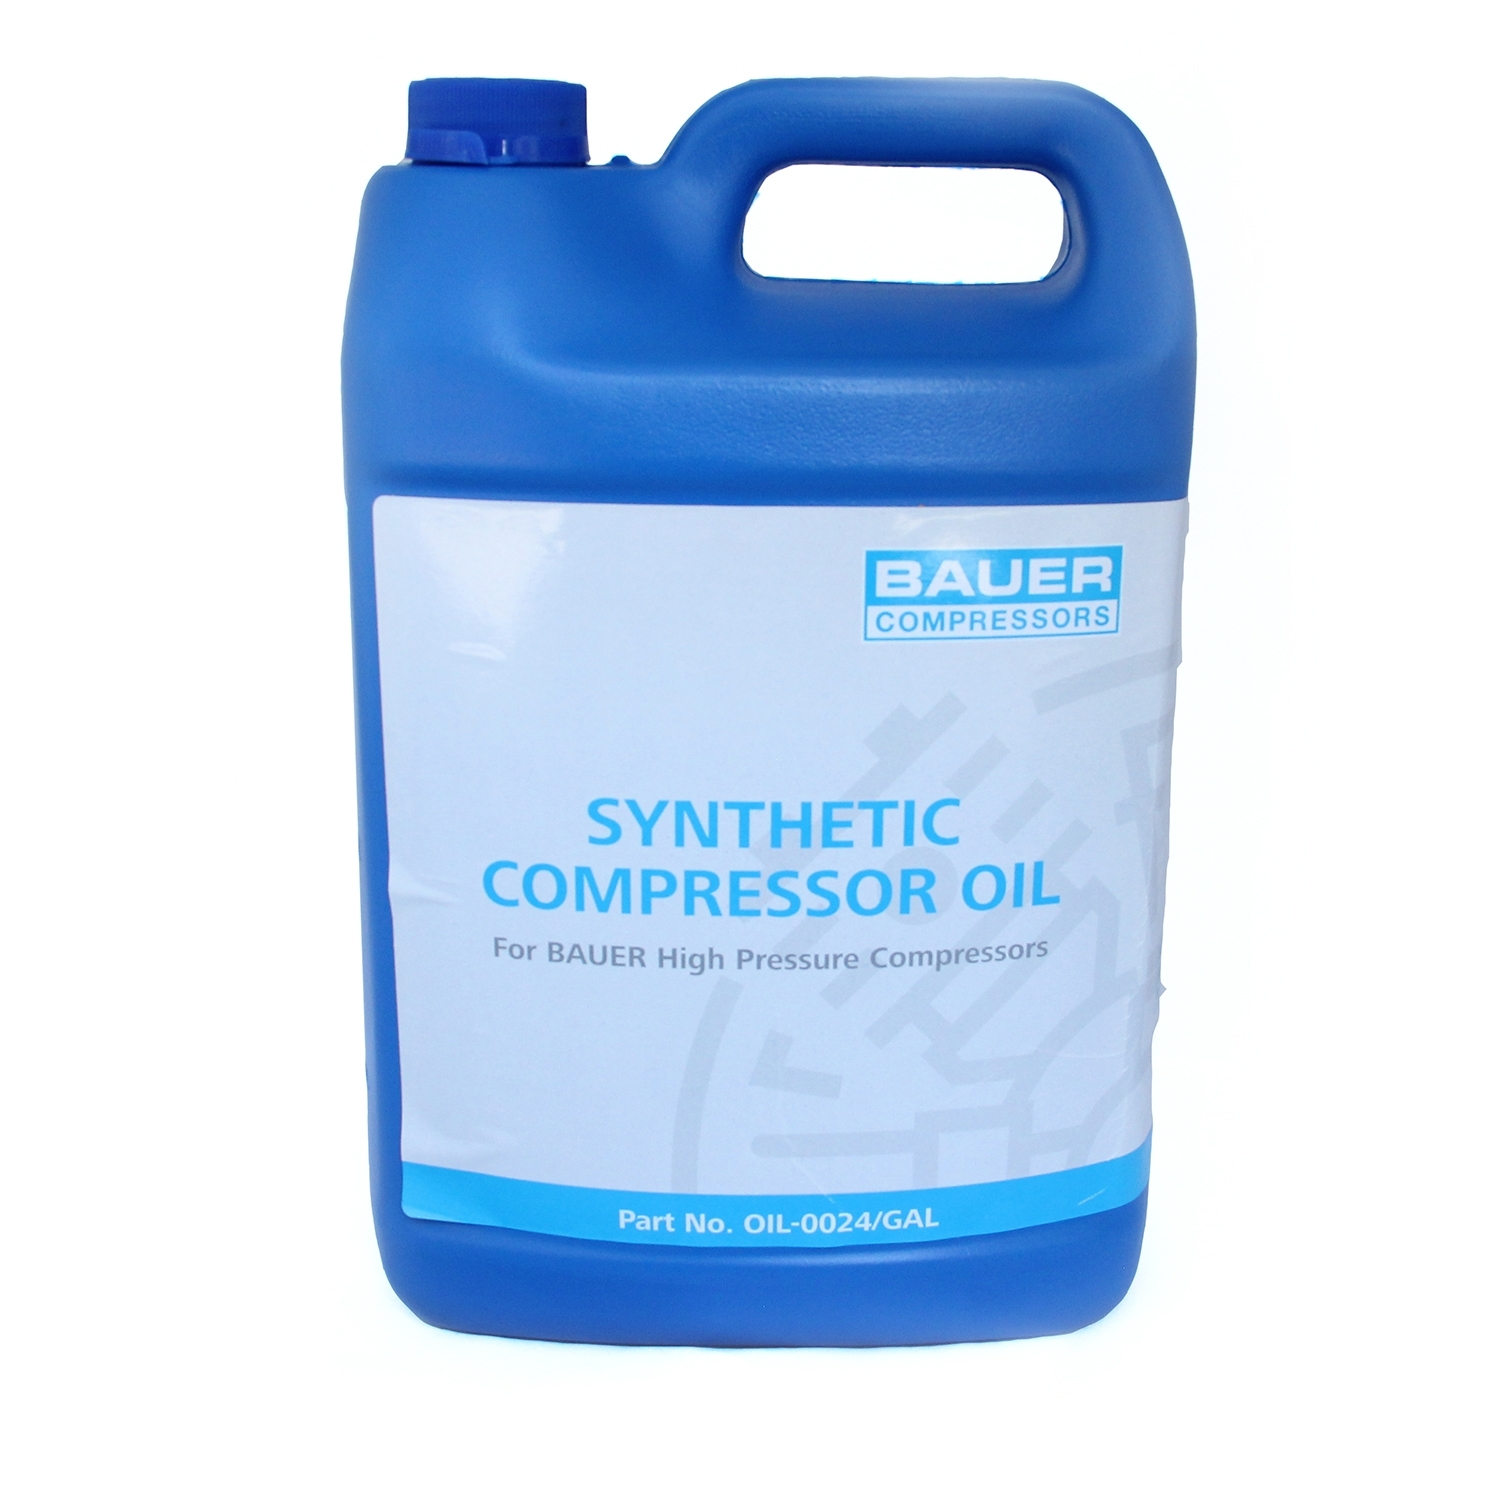 Bauer Compressor Oil